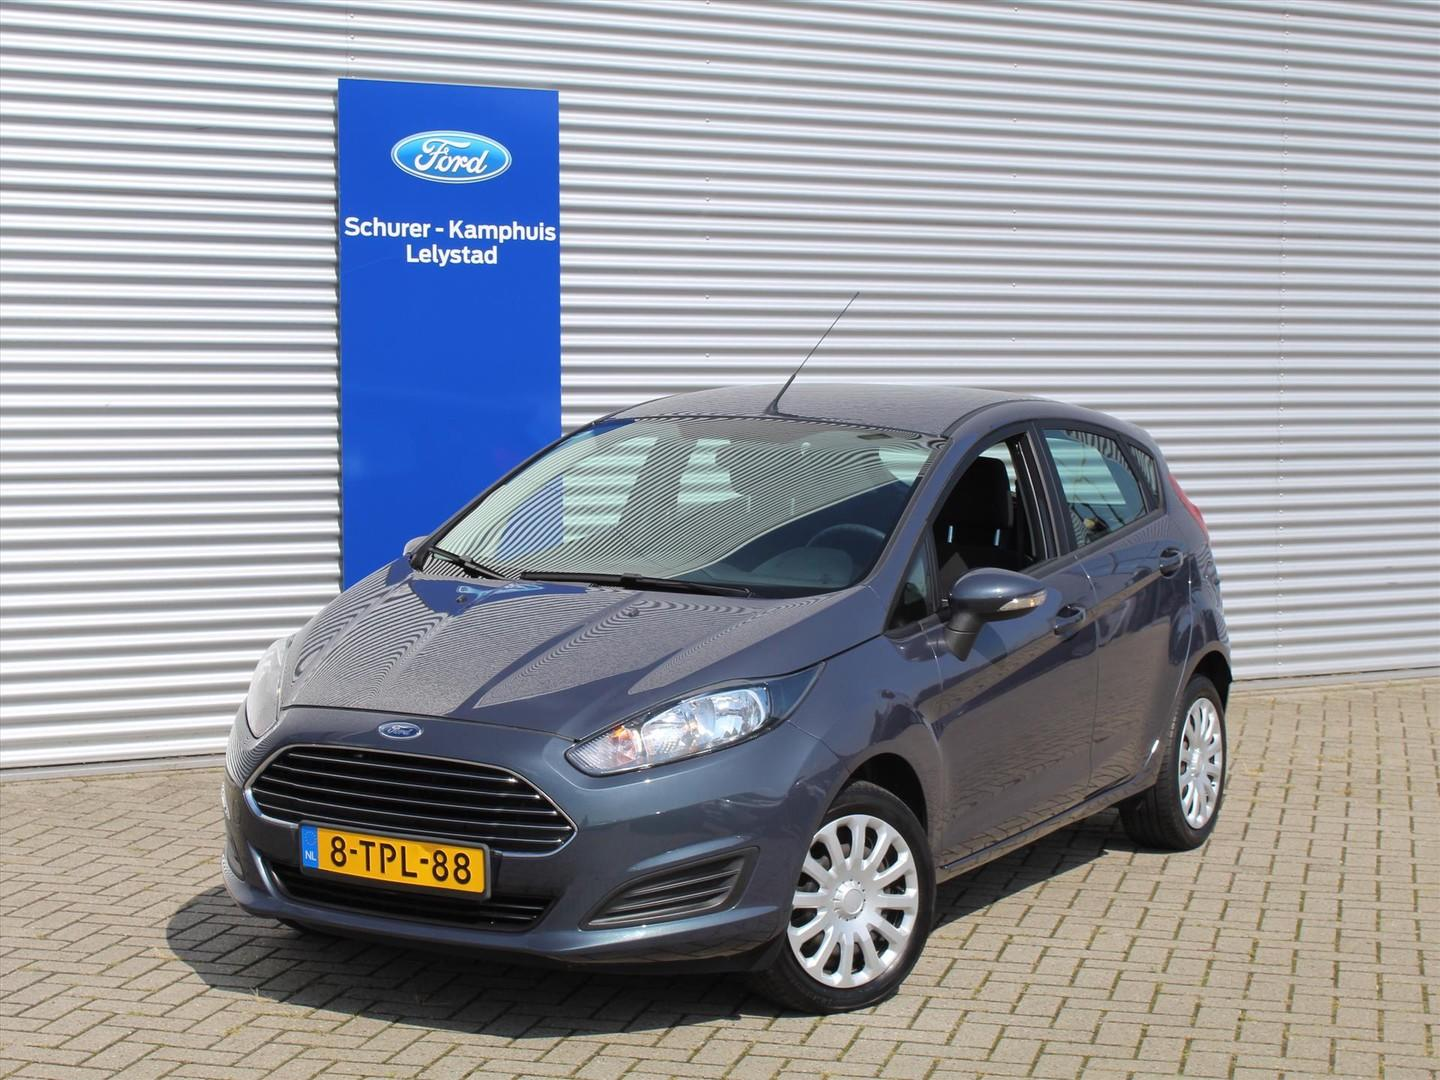 Ford Fiesta 1.0 style 5-drs